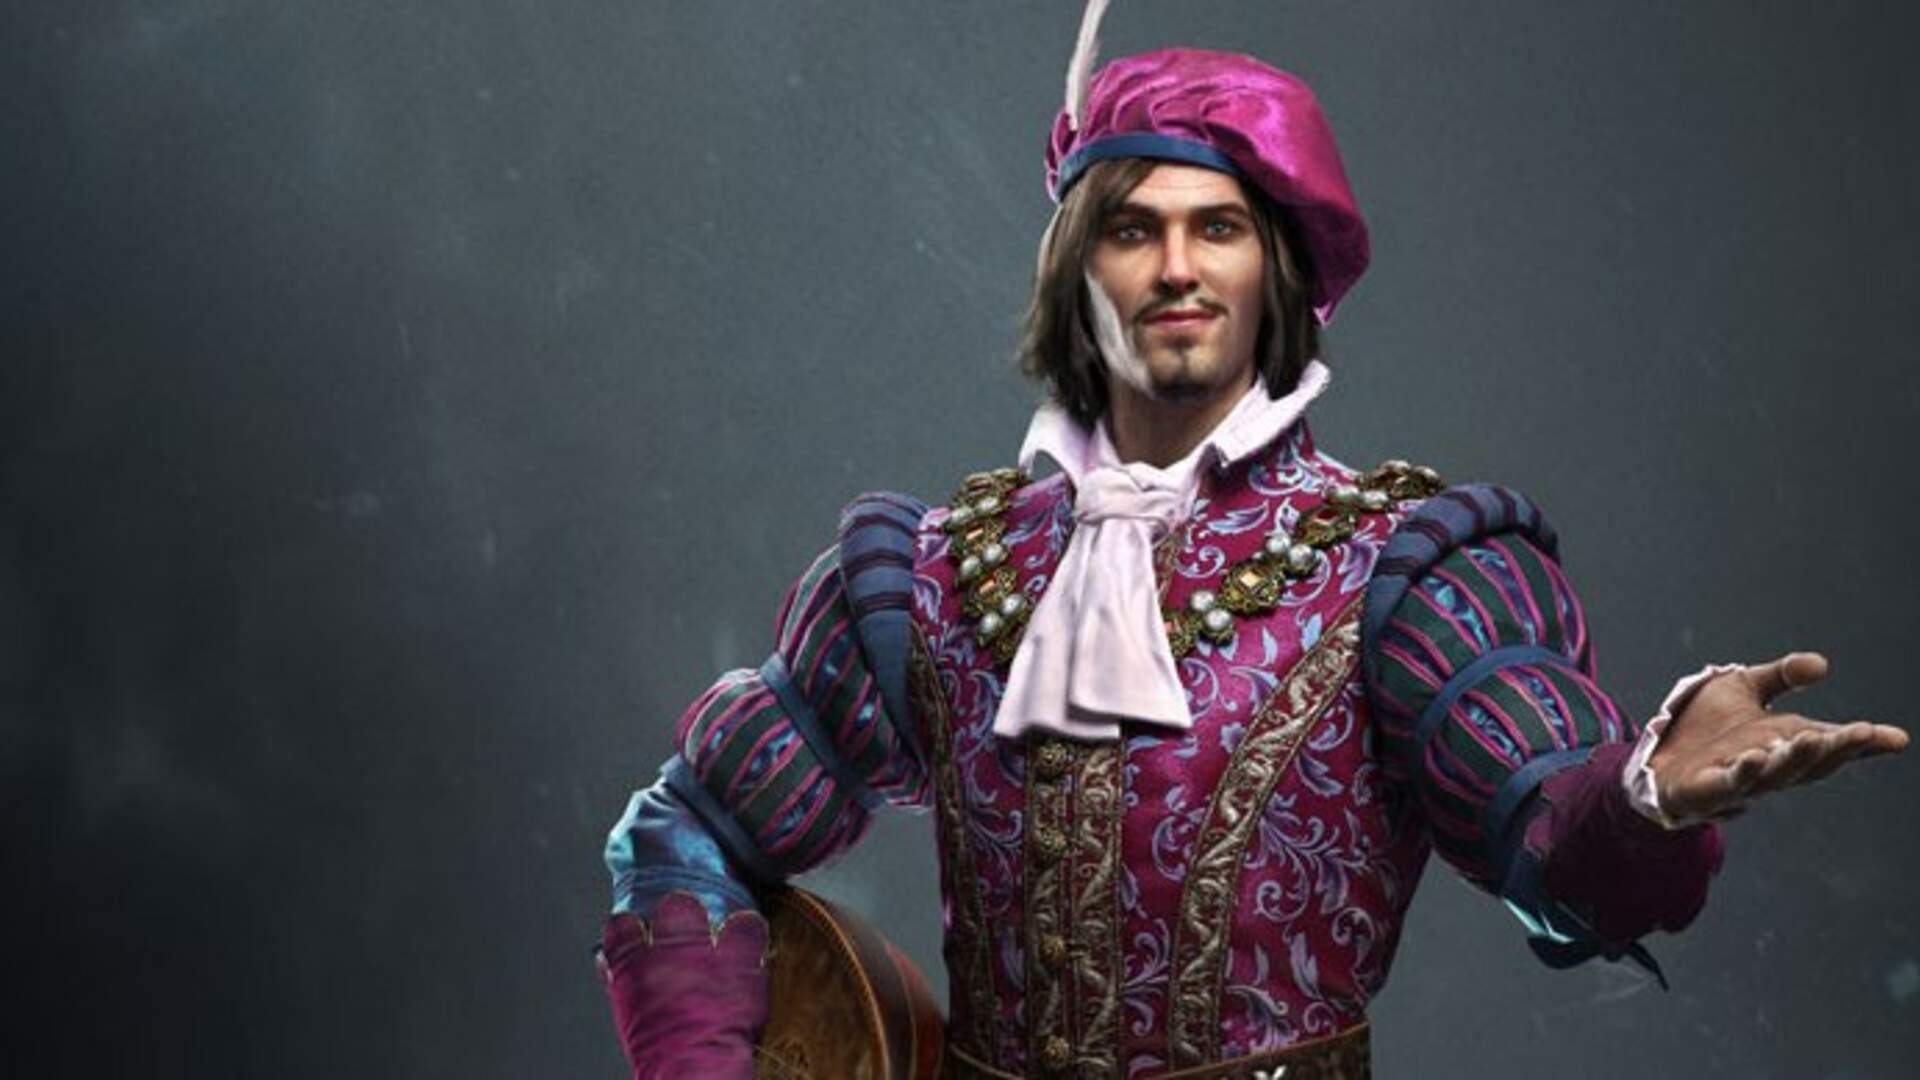 The Witcher's Jaskier Nearly Sported Dandelion's Classic Hat